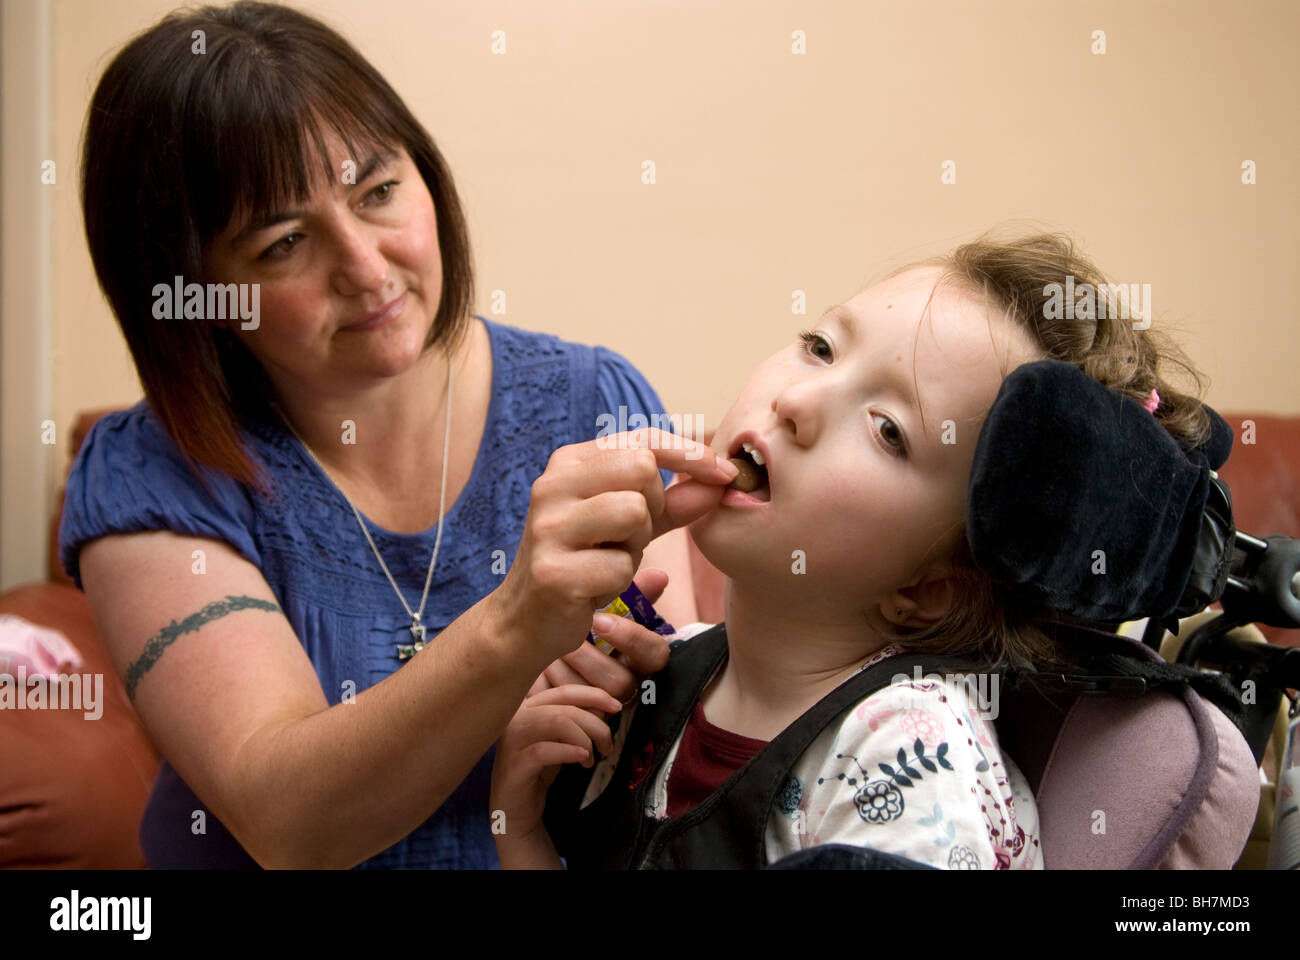 Working mother caring for her disabled daughter at home who suffers from cerebral palsy, Luton, UK. - Stock Image